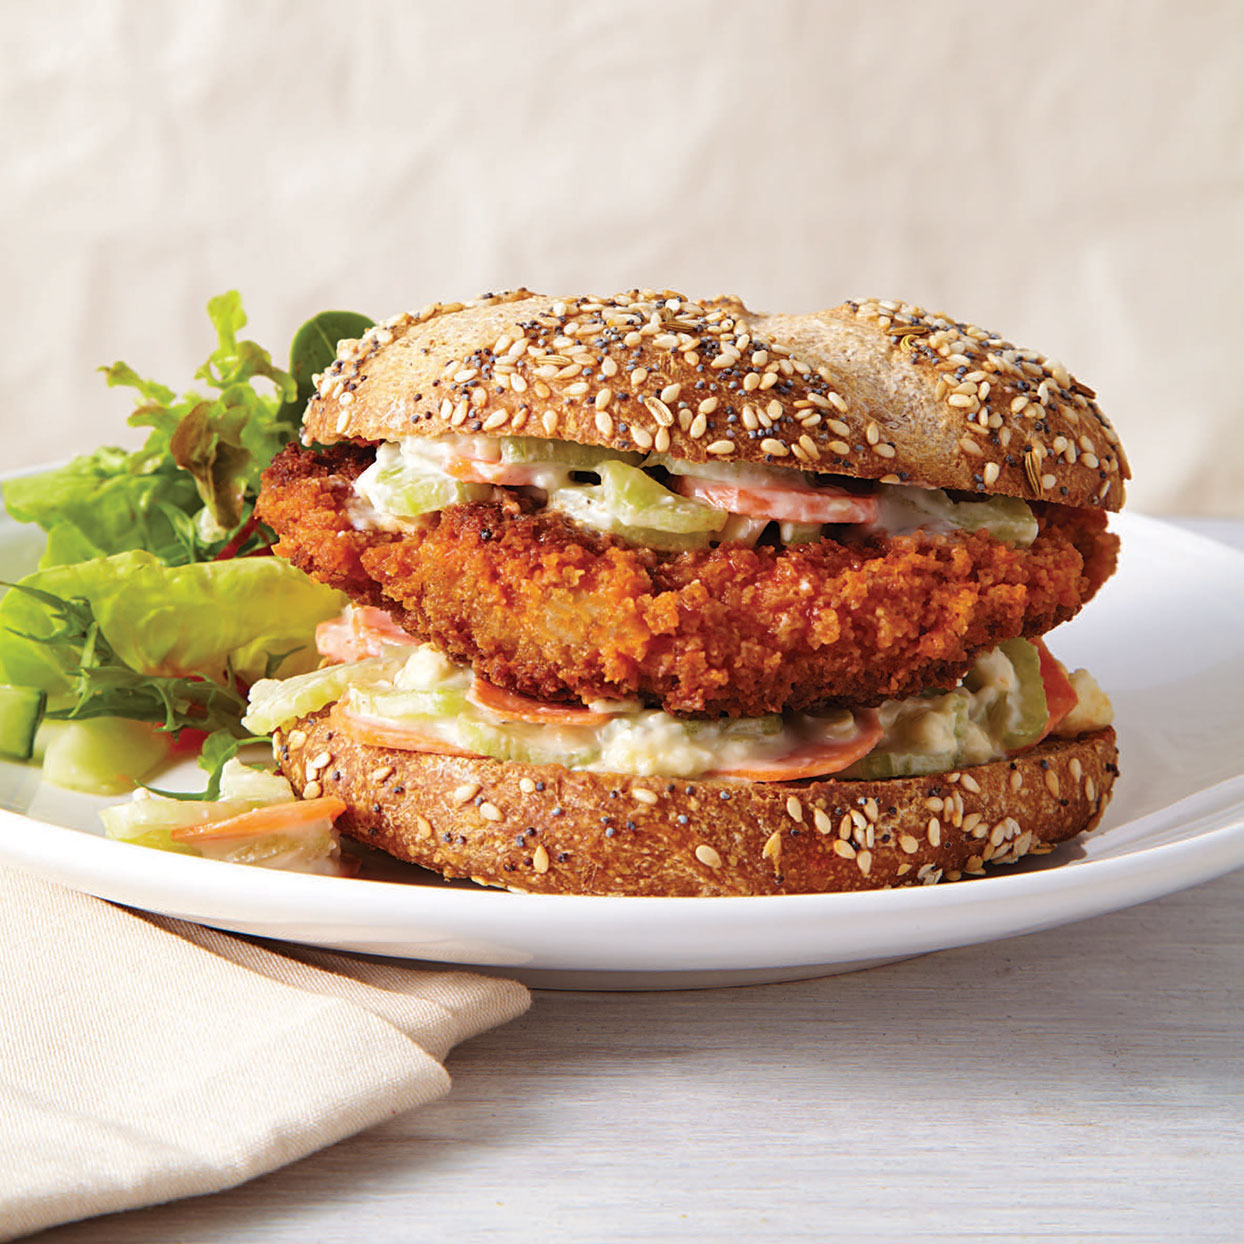 This healthy Buffalo chicken sandwich recipe takes the traditional accompaniments to Buffalo chicken wings--carrots, celery and blue cheese dip--and turns them into a crunchy slaw to top the sandwich Source: EatingWell Magazine, November/December 2013